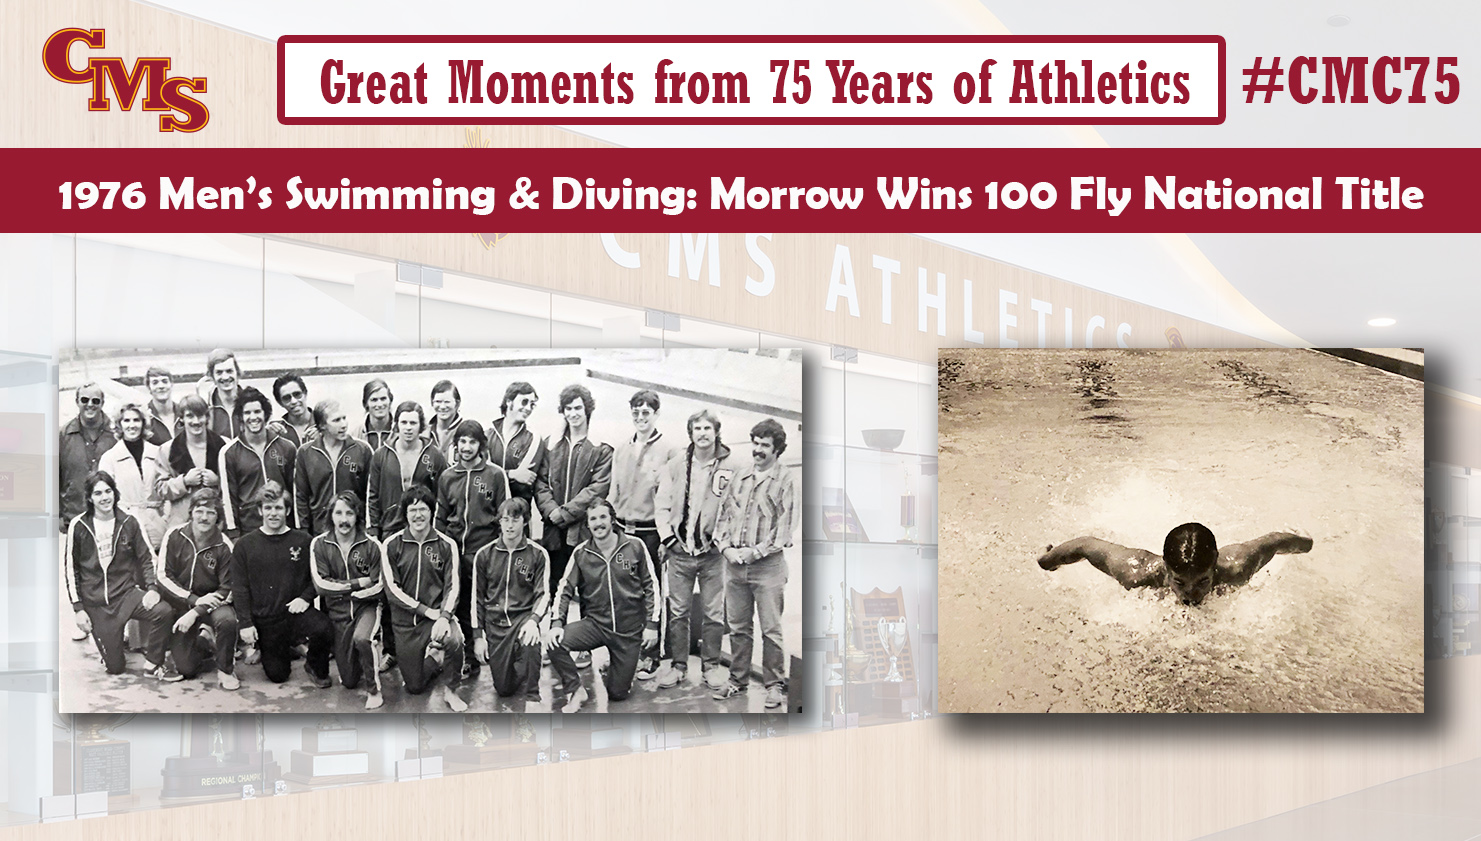 Pictures of the 1976 CMS swim and dive team and Bill Morrow competing in the butterfly. Words over the photo read: Great Moments from 75 Years of Athletics, 1976 Men's Swimming & Diving: Morrow Wins 100 Fly National Title